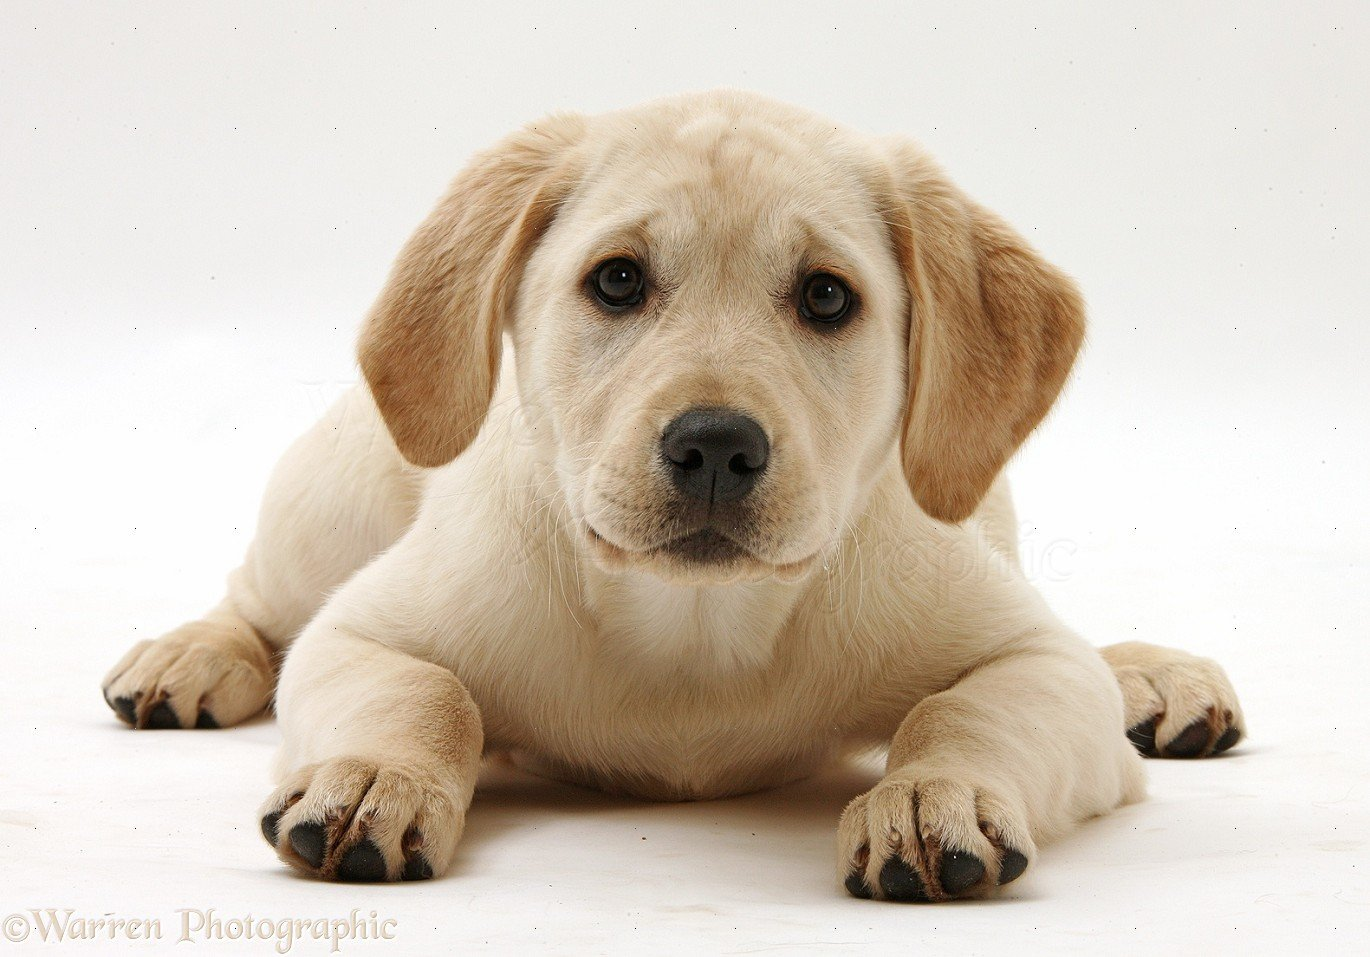 34882 Yellow Labrador Retriever puppy white backgroundjpg 1370x957